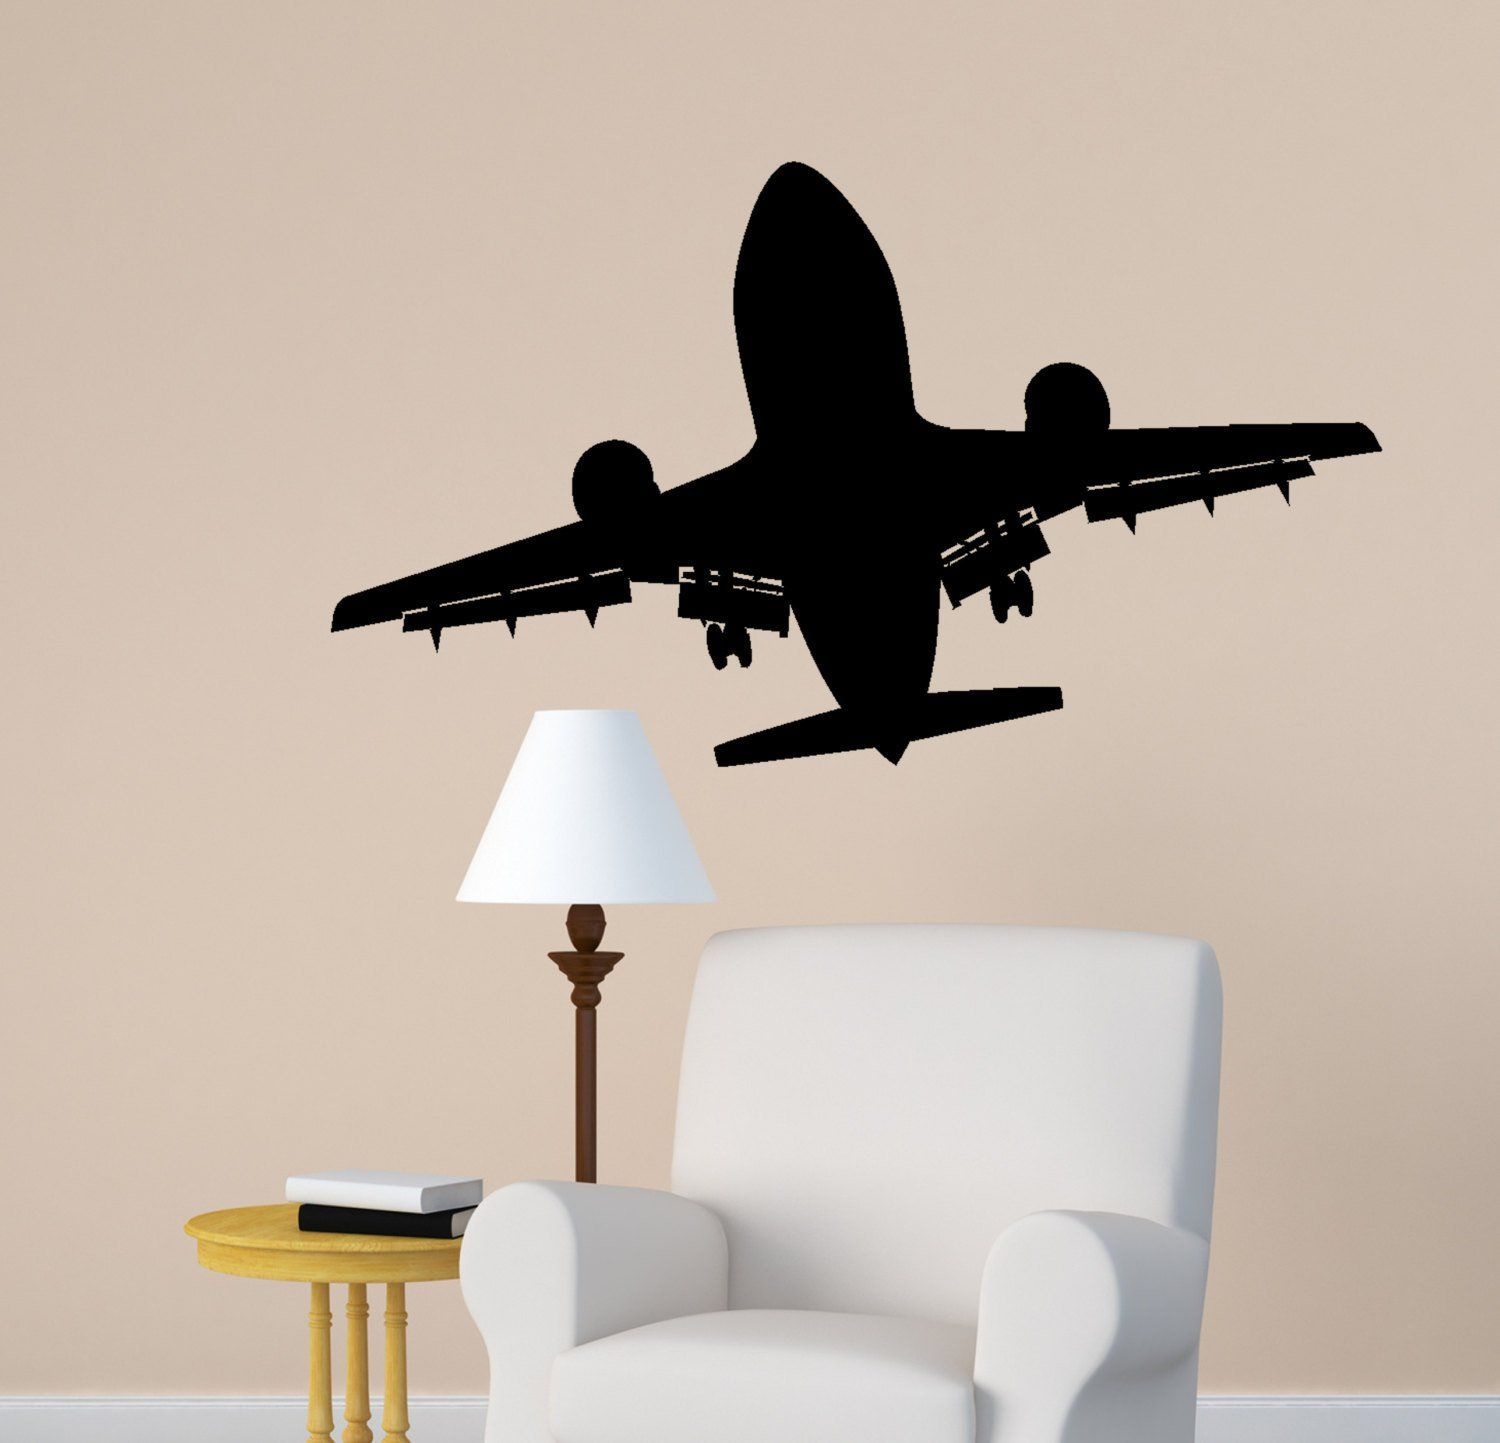 Nursery wall decals airplanes pinterest airplane art and also rh